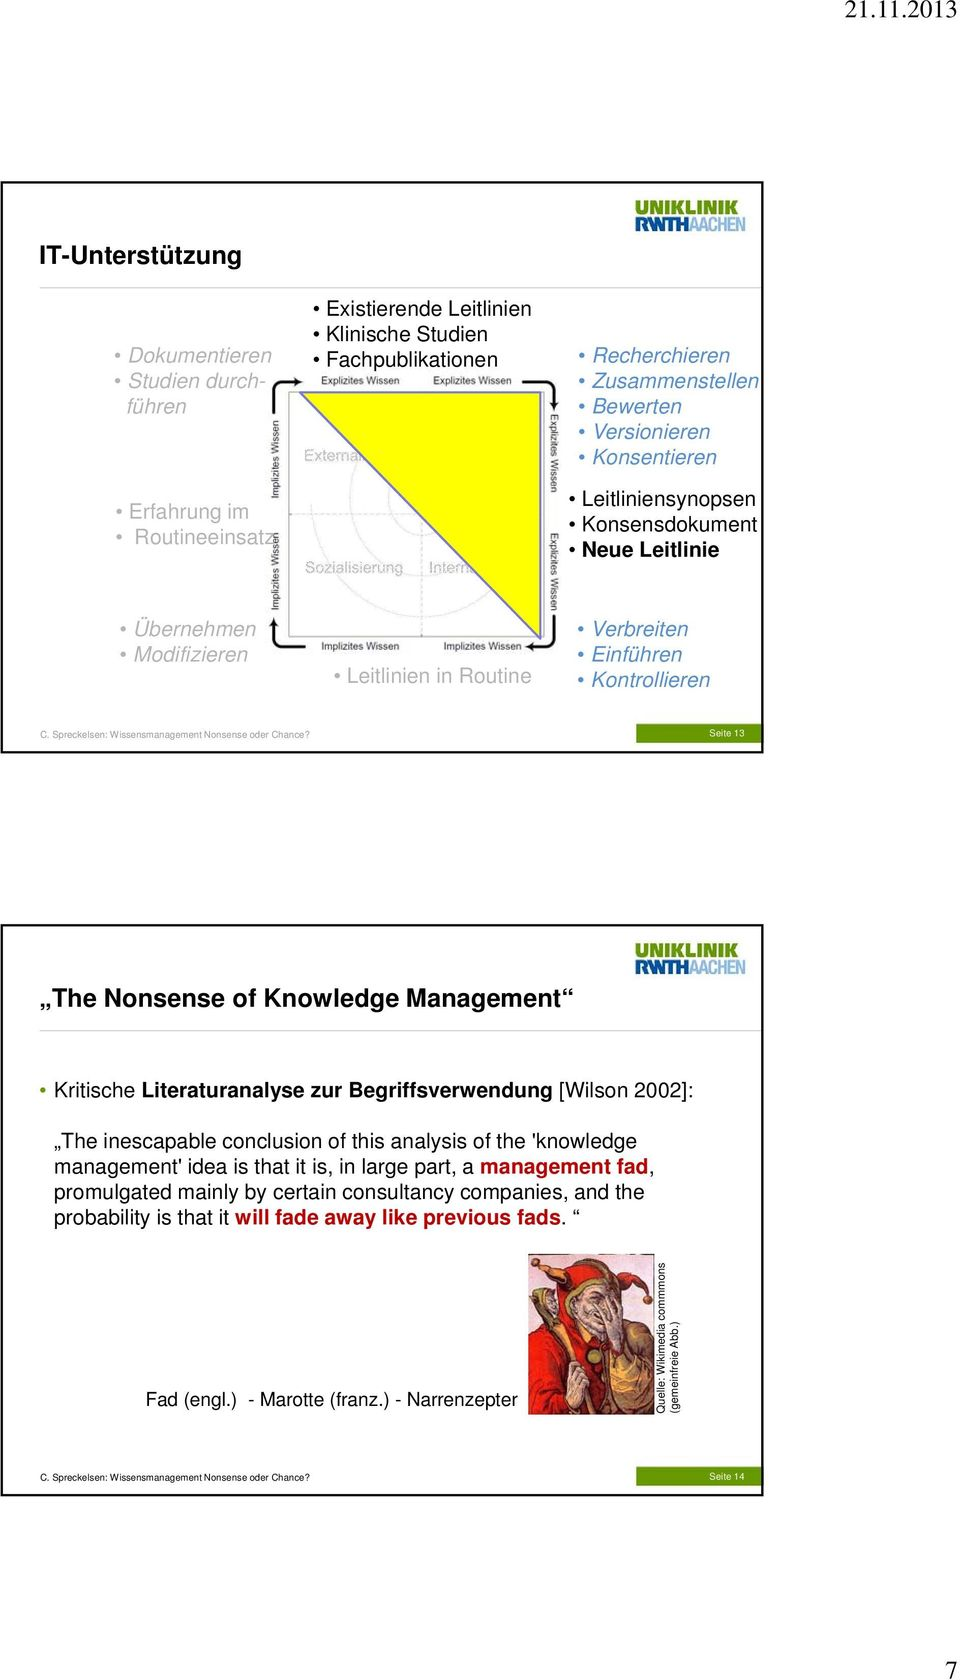 Kritische Literaturanalyse zur Begriffsverwendung [Wilson 2002]: The inescapable conclusion of this analysis of the 'knowledge management' idea is that it is, in large part, a management fad,